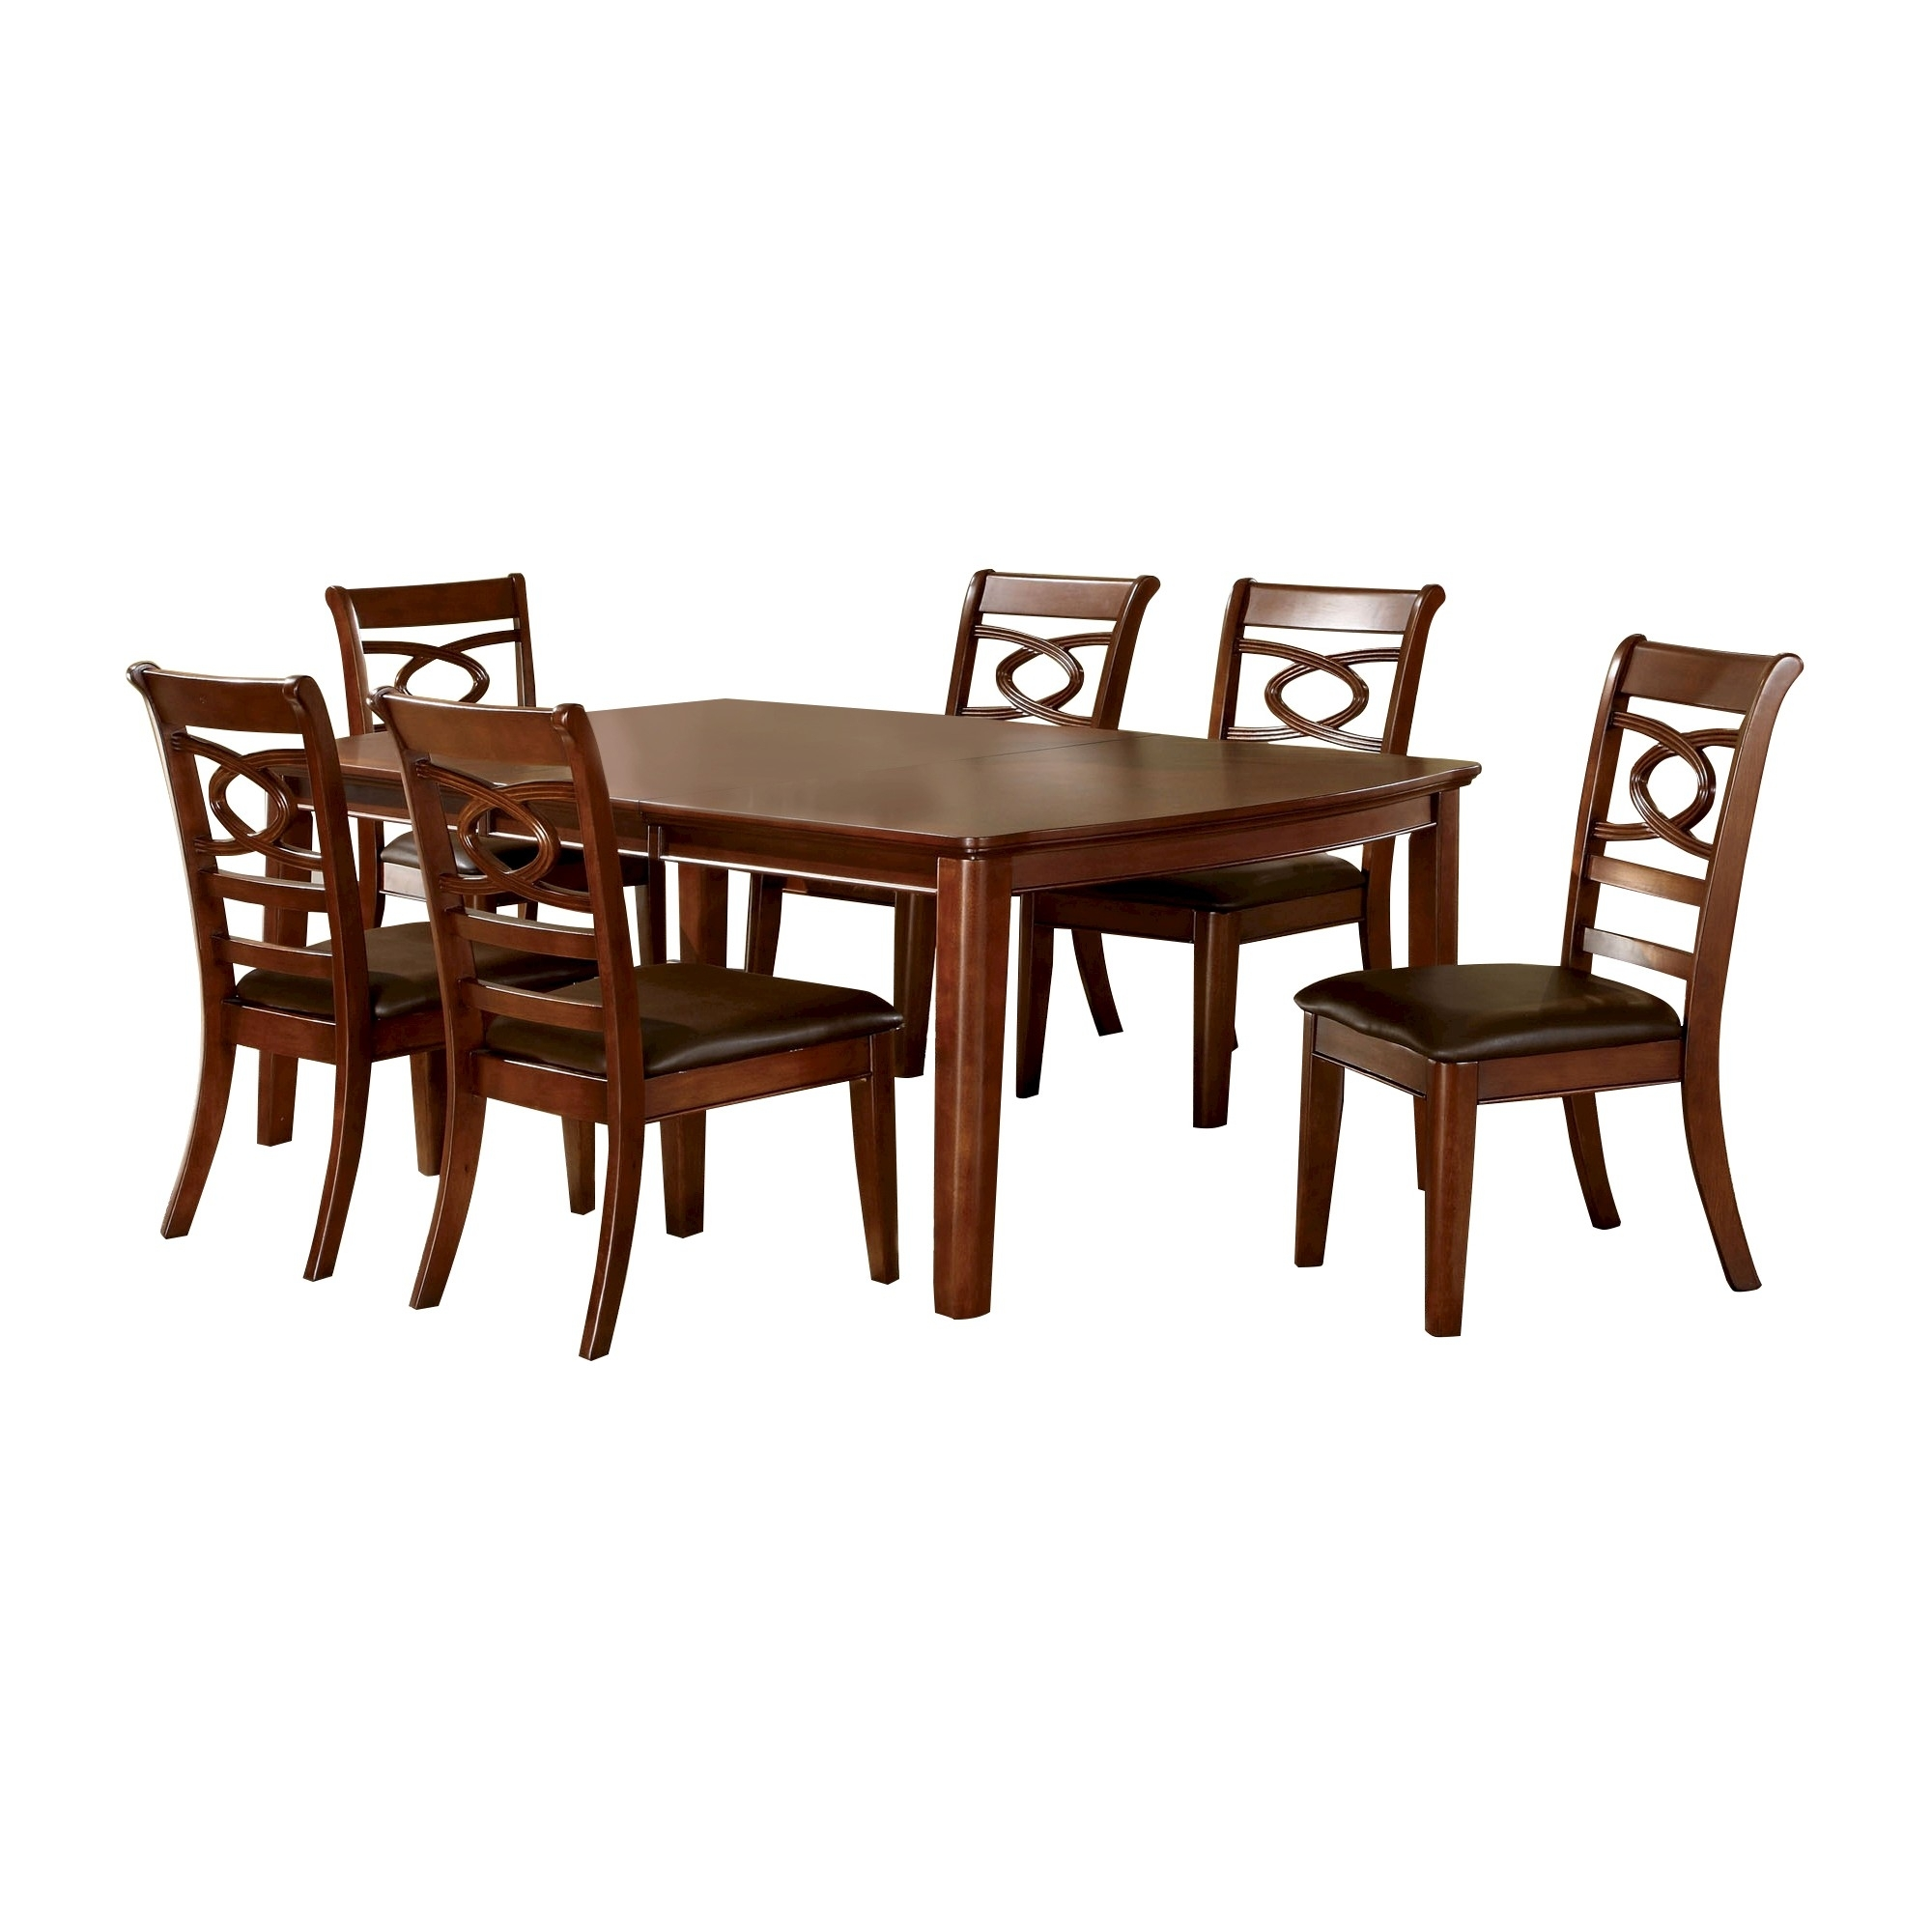 Sun & Pine 7Pc Simple Dining Table Set Wood/brown Cherry | Products For Best And Newest Norwood 9 Piece Rectangle Extension Dining Sets (Image 17 of 20)